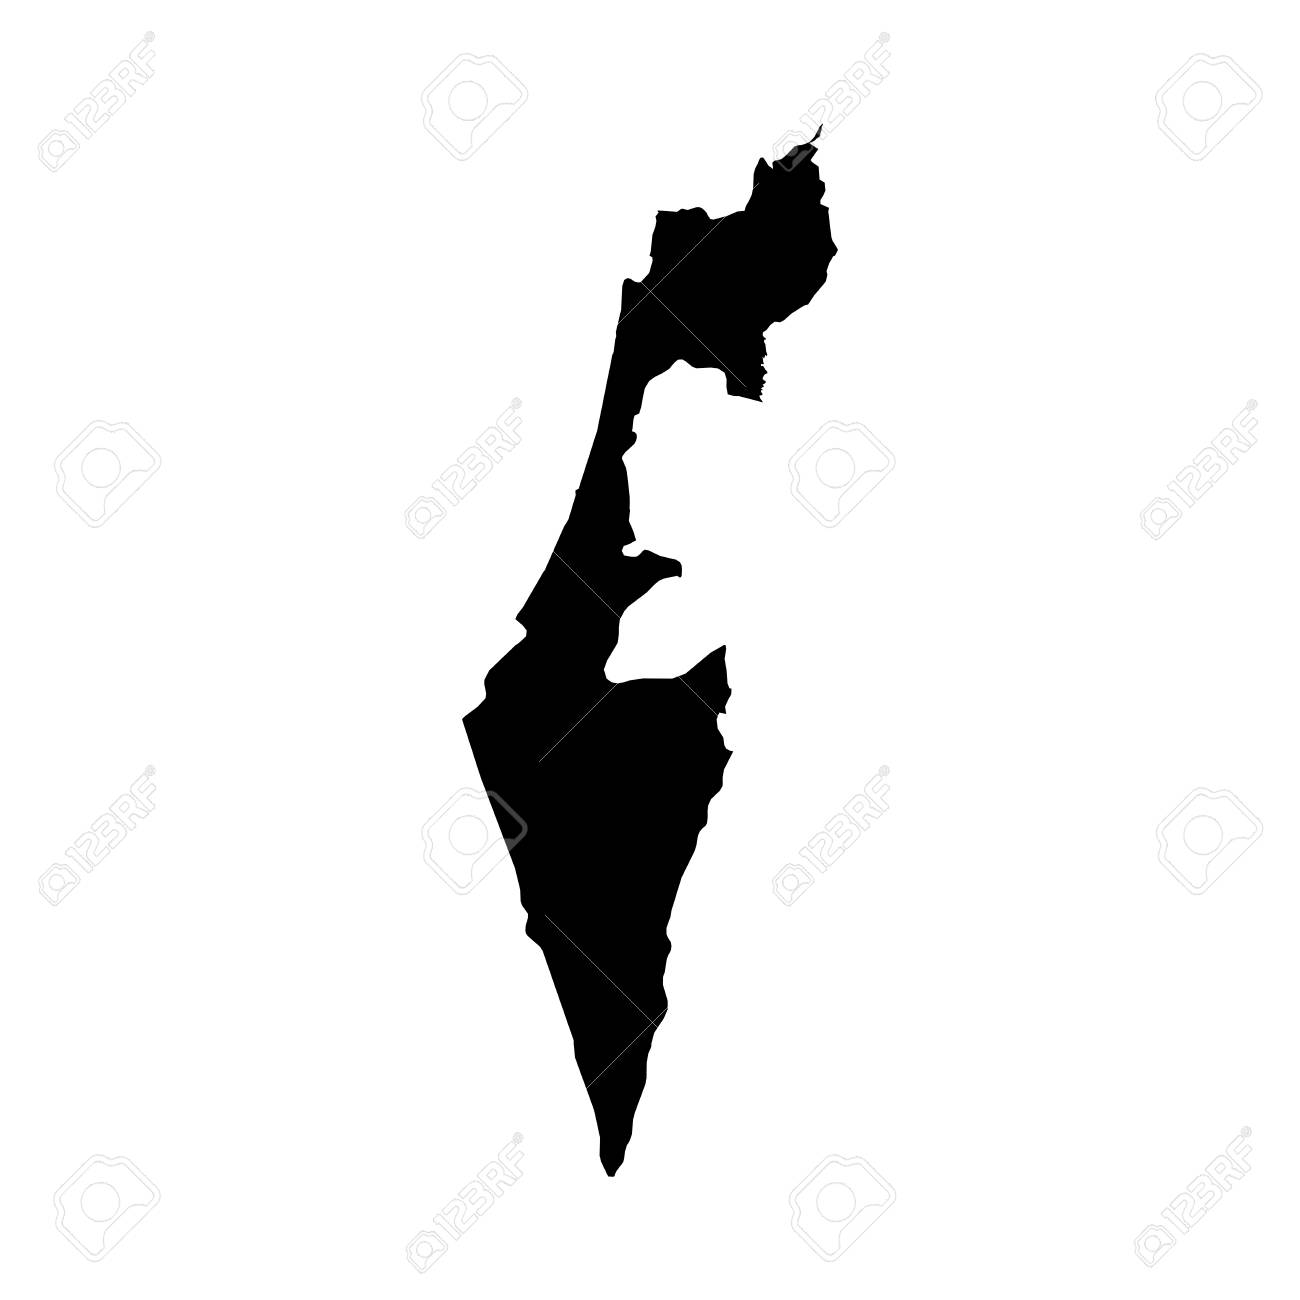 Israel Black Silhouette Map Outline Isolated On White 3D     Illustration   Israel Black Silhouette Map Outline Isolated on White 3D  Illustration